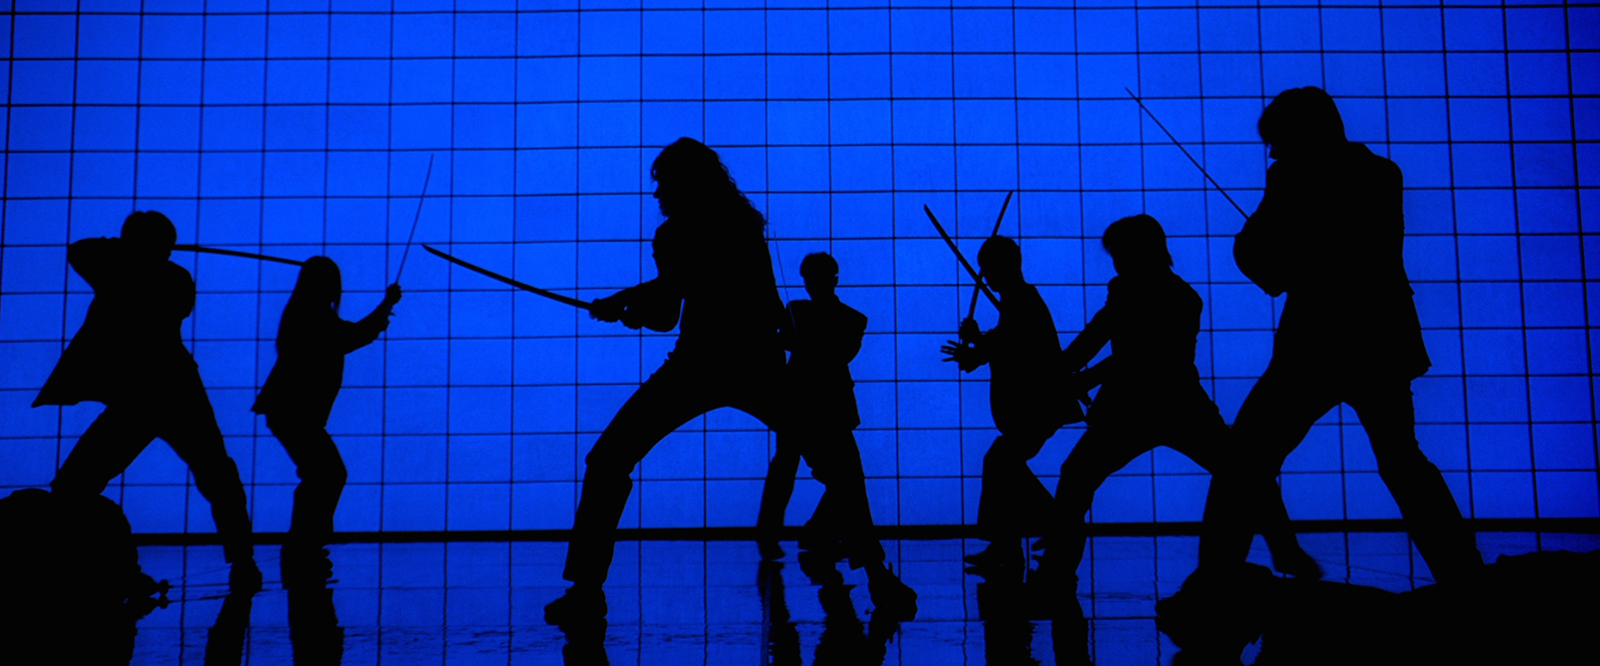 Kill+Bill+Vol.+1+fight+scene.jpg